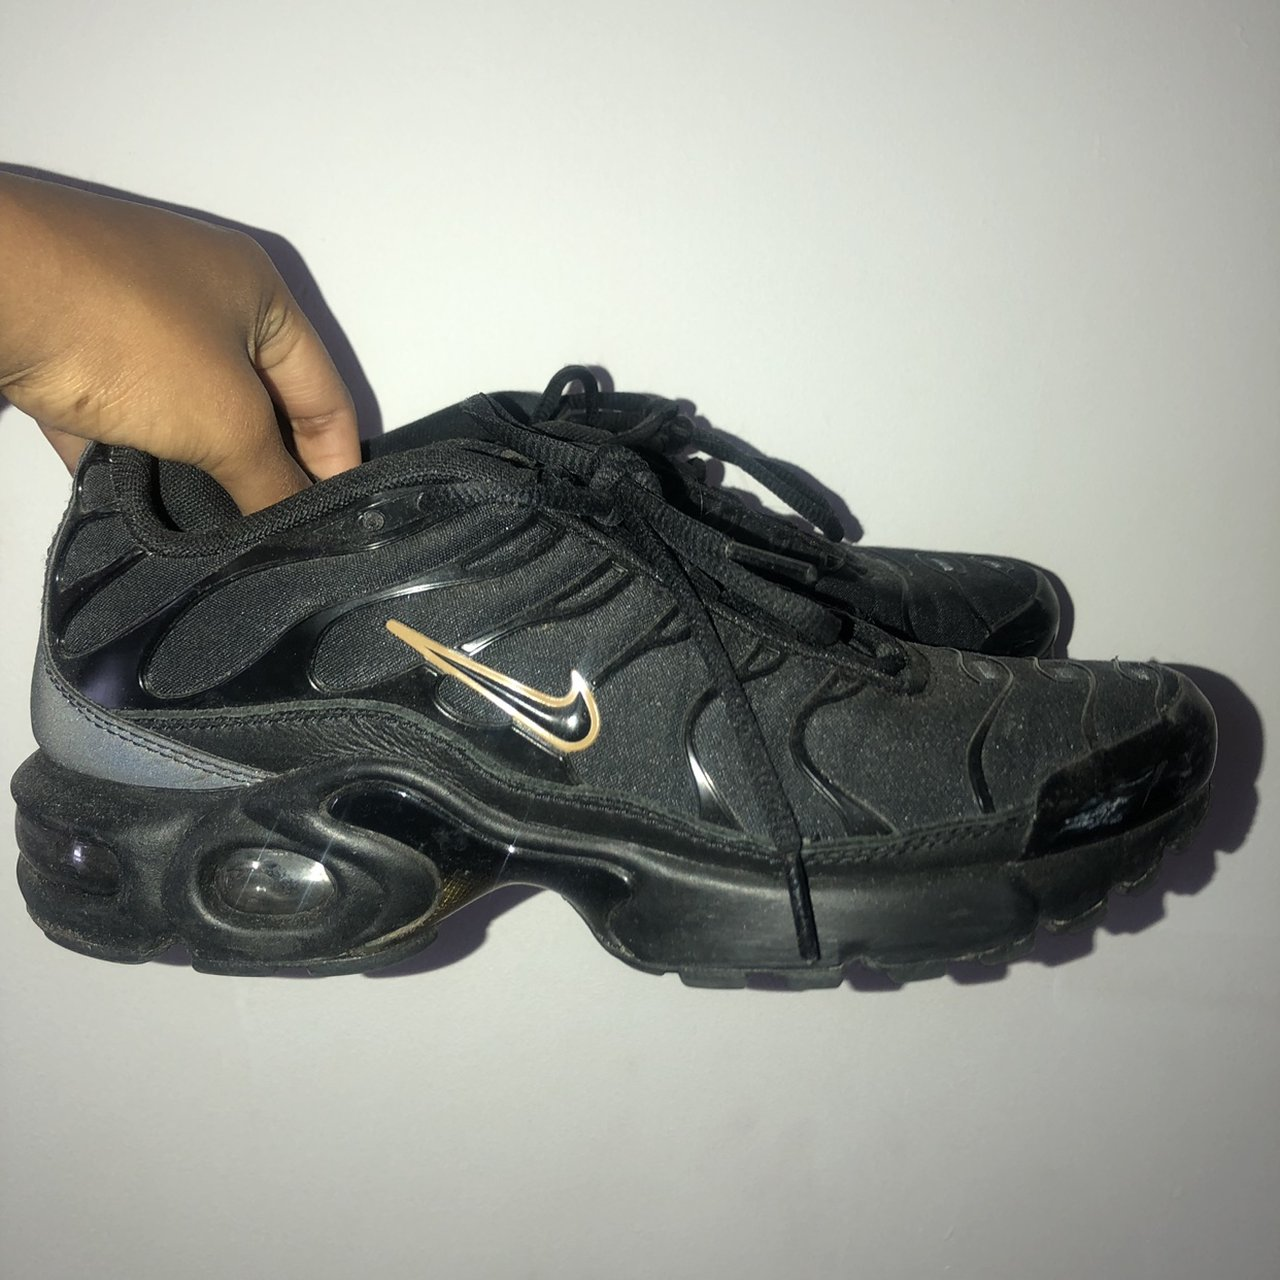 Nike TN's in Black with Gold tick